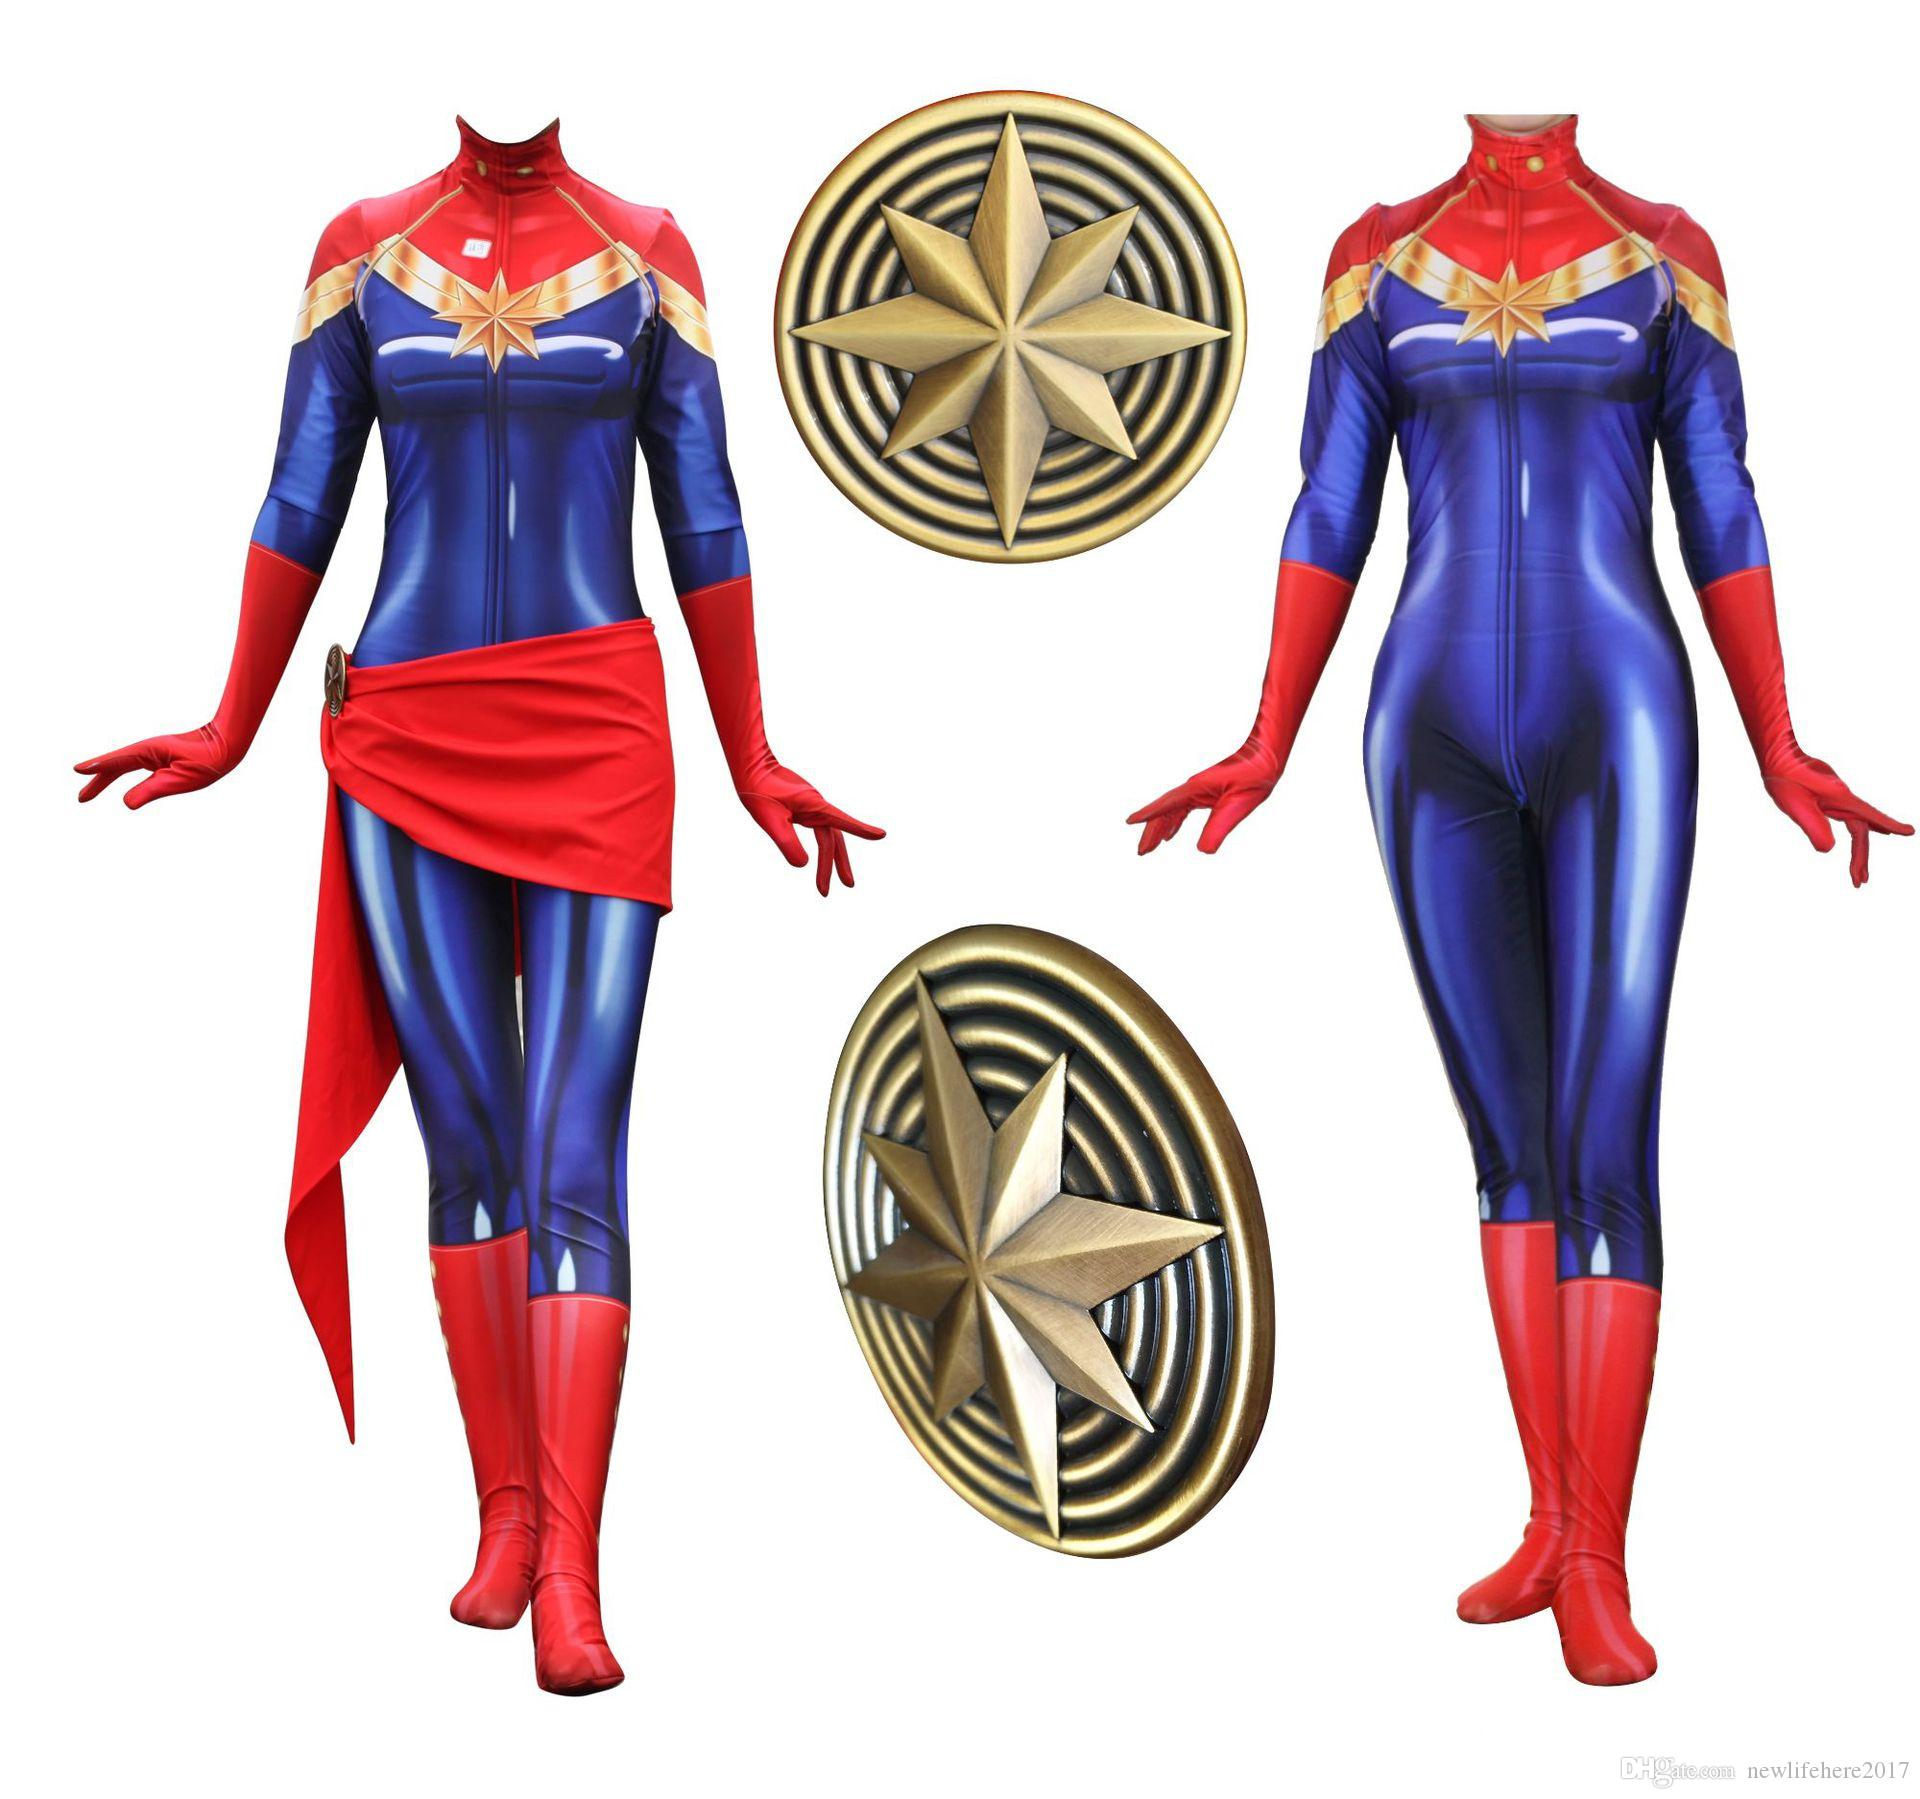 2020 Captain Marvel Cosplay Costume Avengers Superhero Carol Danvers Jumpsuit Sexy Cosplay Zentai Suit Adult Halloween Women Bodysuit From Newlifehere2017 37 57 Dhgate Com Then, after the avengers are formed and s.h.i.e.l.d goes under, the symbol disappears from all of her future uniforms. 2020 captain marvel cosplay costume